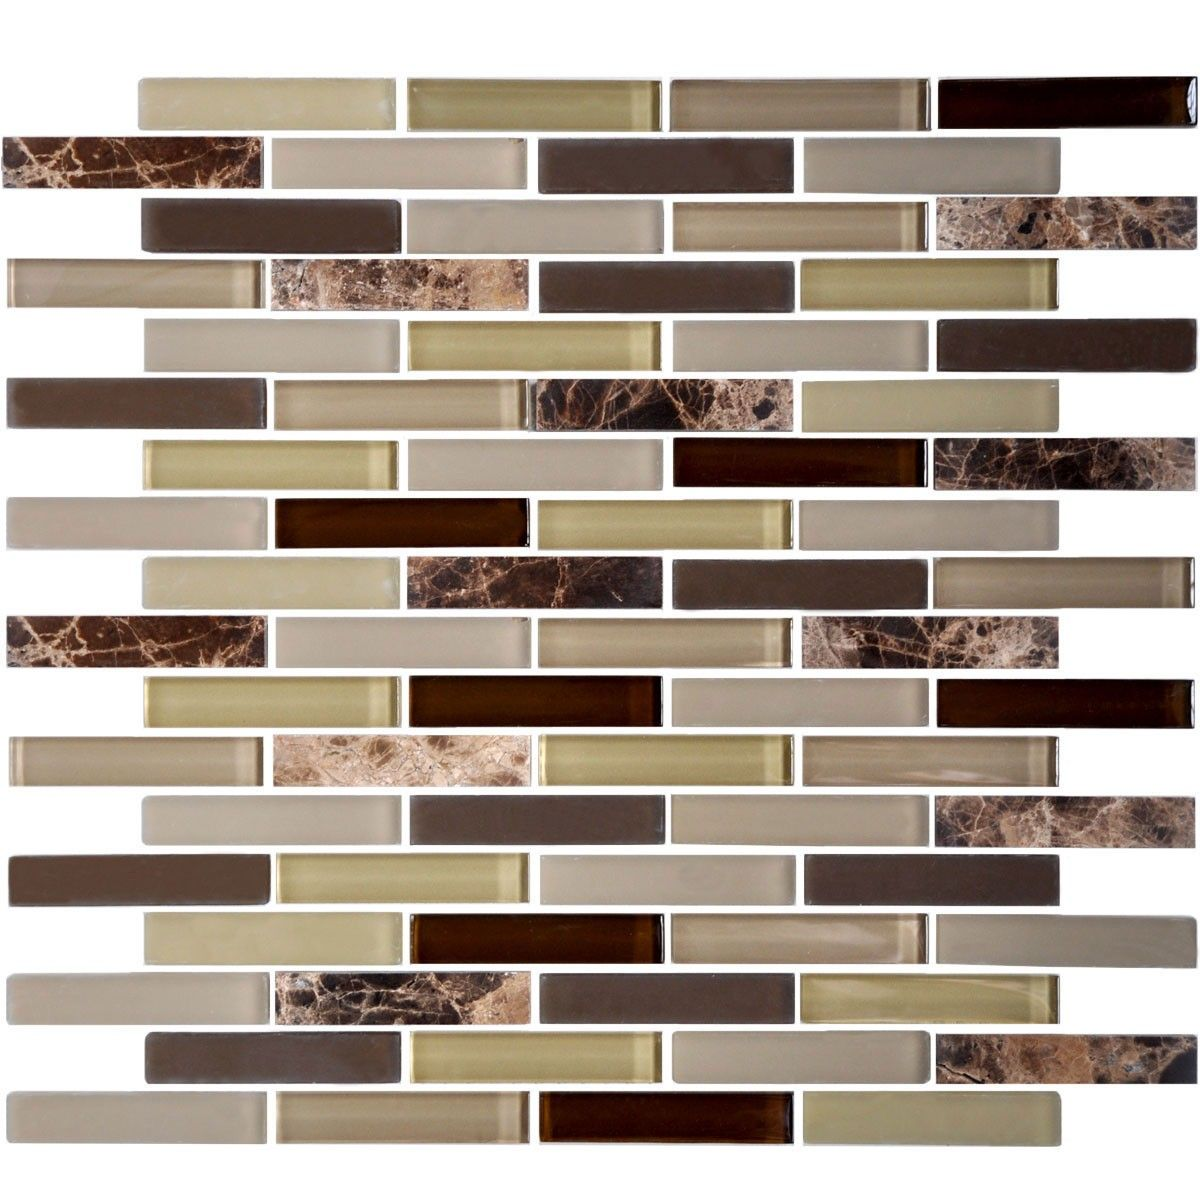 12 in. x 12 in. Glass/Stone Blend Strip Mosaic Tile - 8mm Thickness (AD806026)